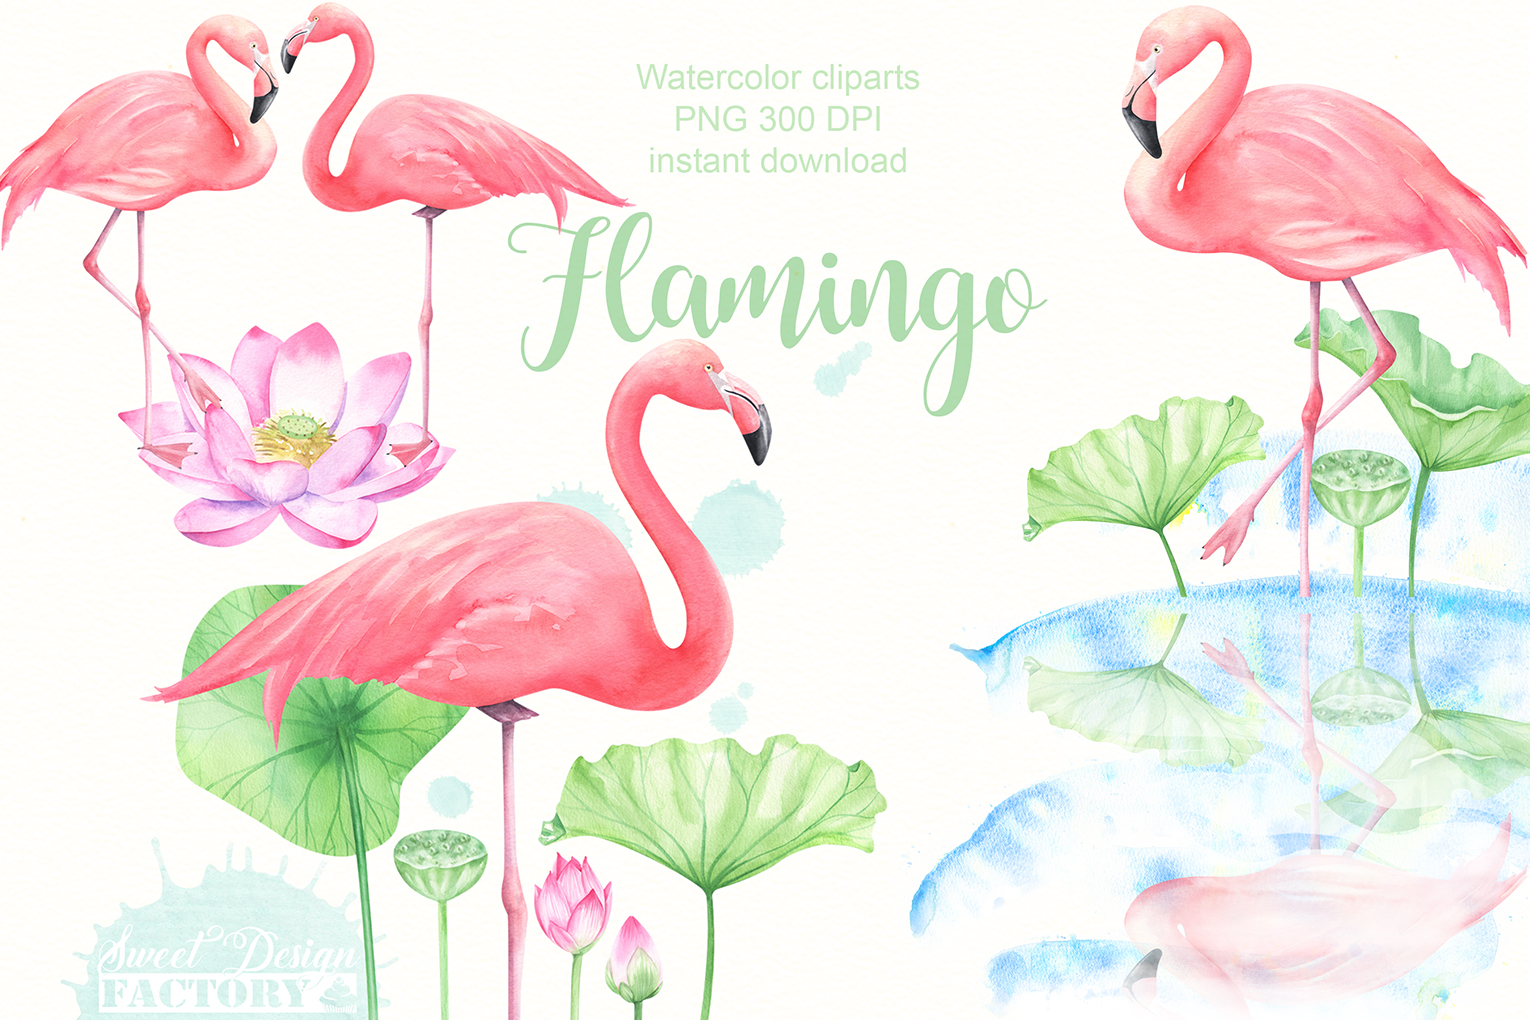 hight resolution of watercolor flamingo cliparts example image 1